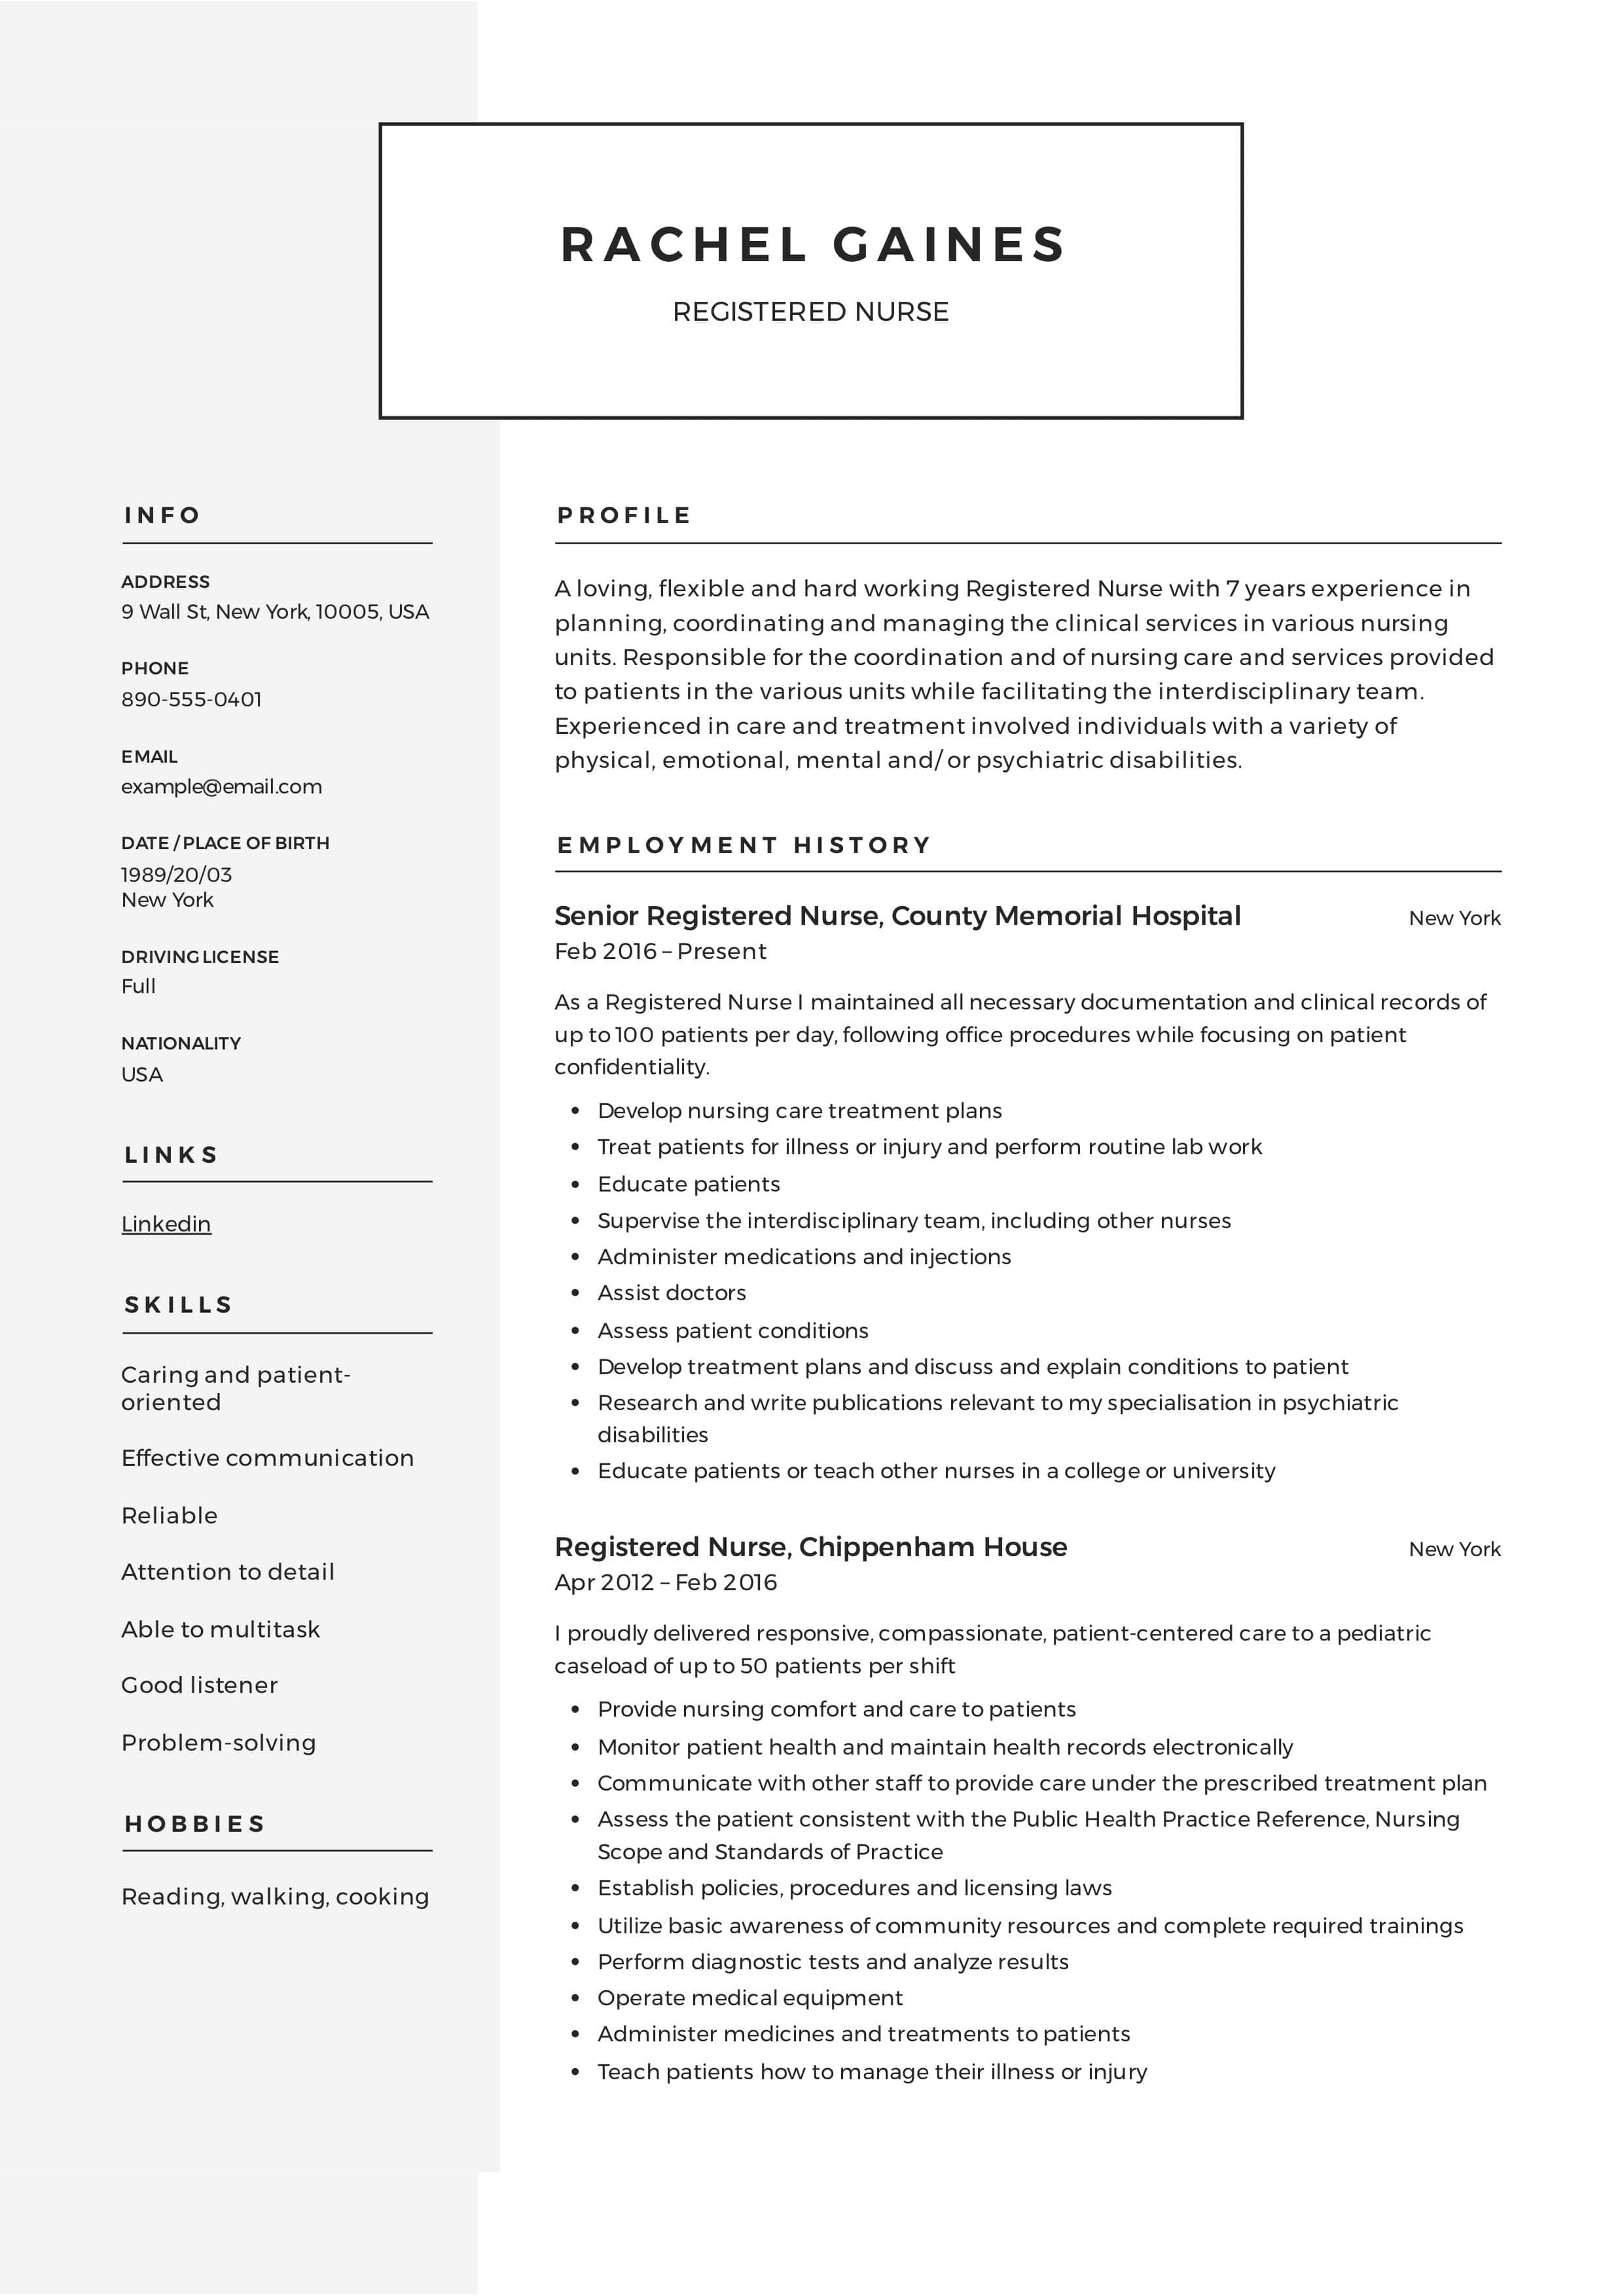 007 Breathtaking Resume Template For Nurse High Def  Sample Nursing Assistant With No Experience Rn' FreeFull